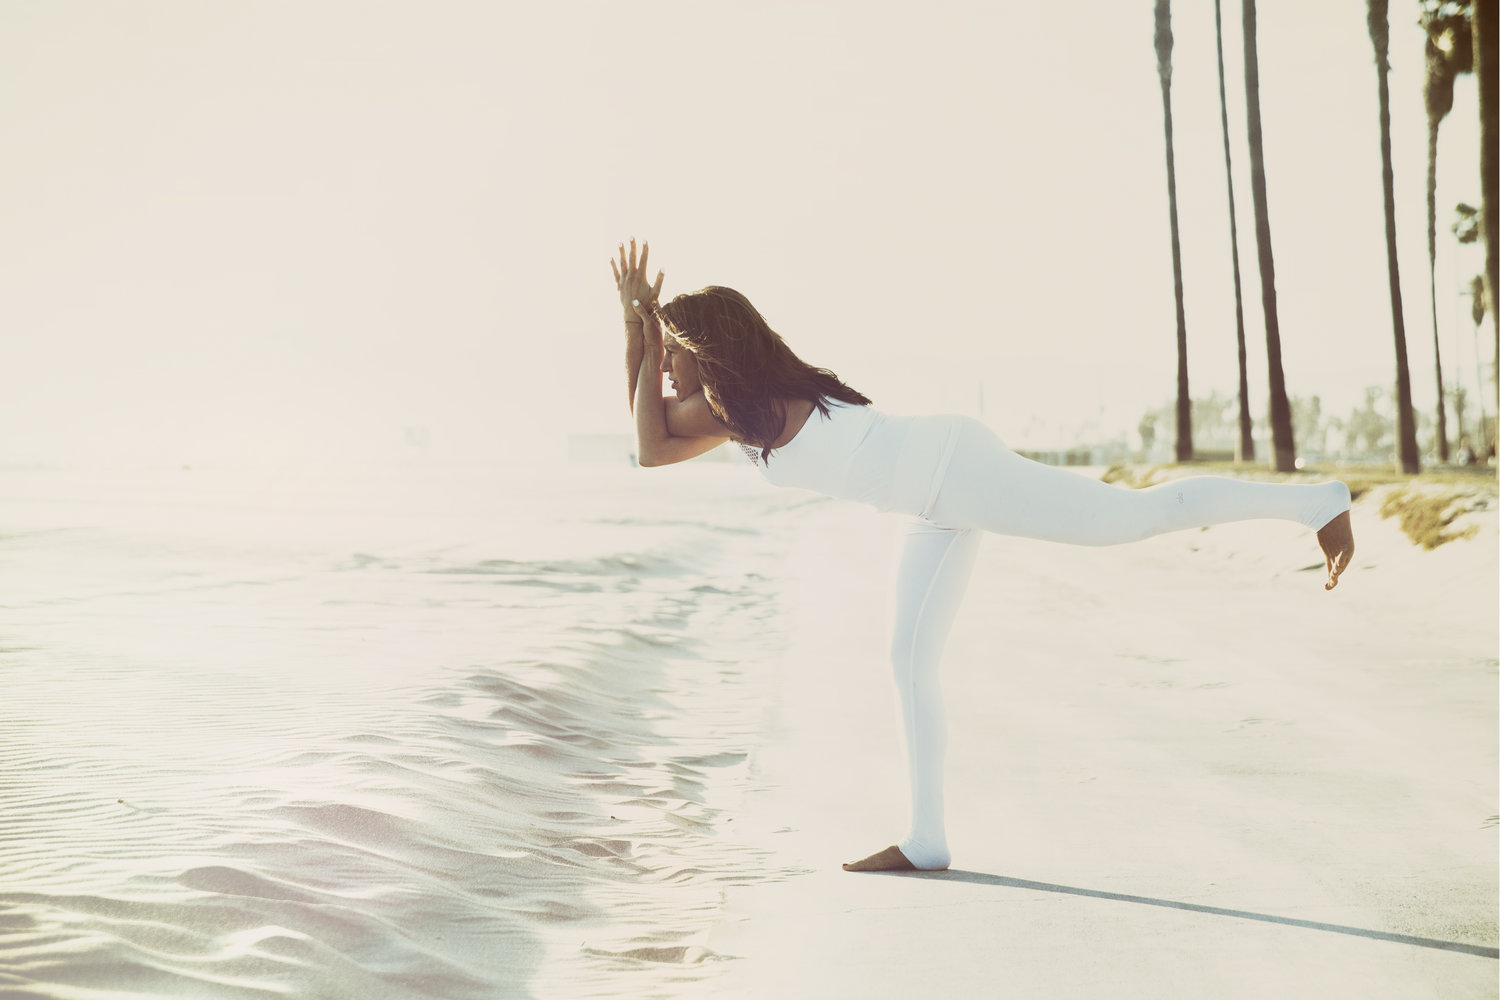 The Huffington Post: A Yoga Sequence to Balance the Thyroid